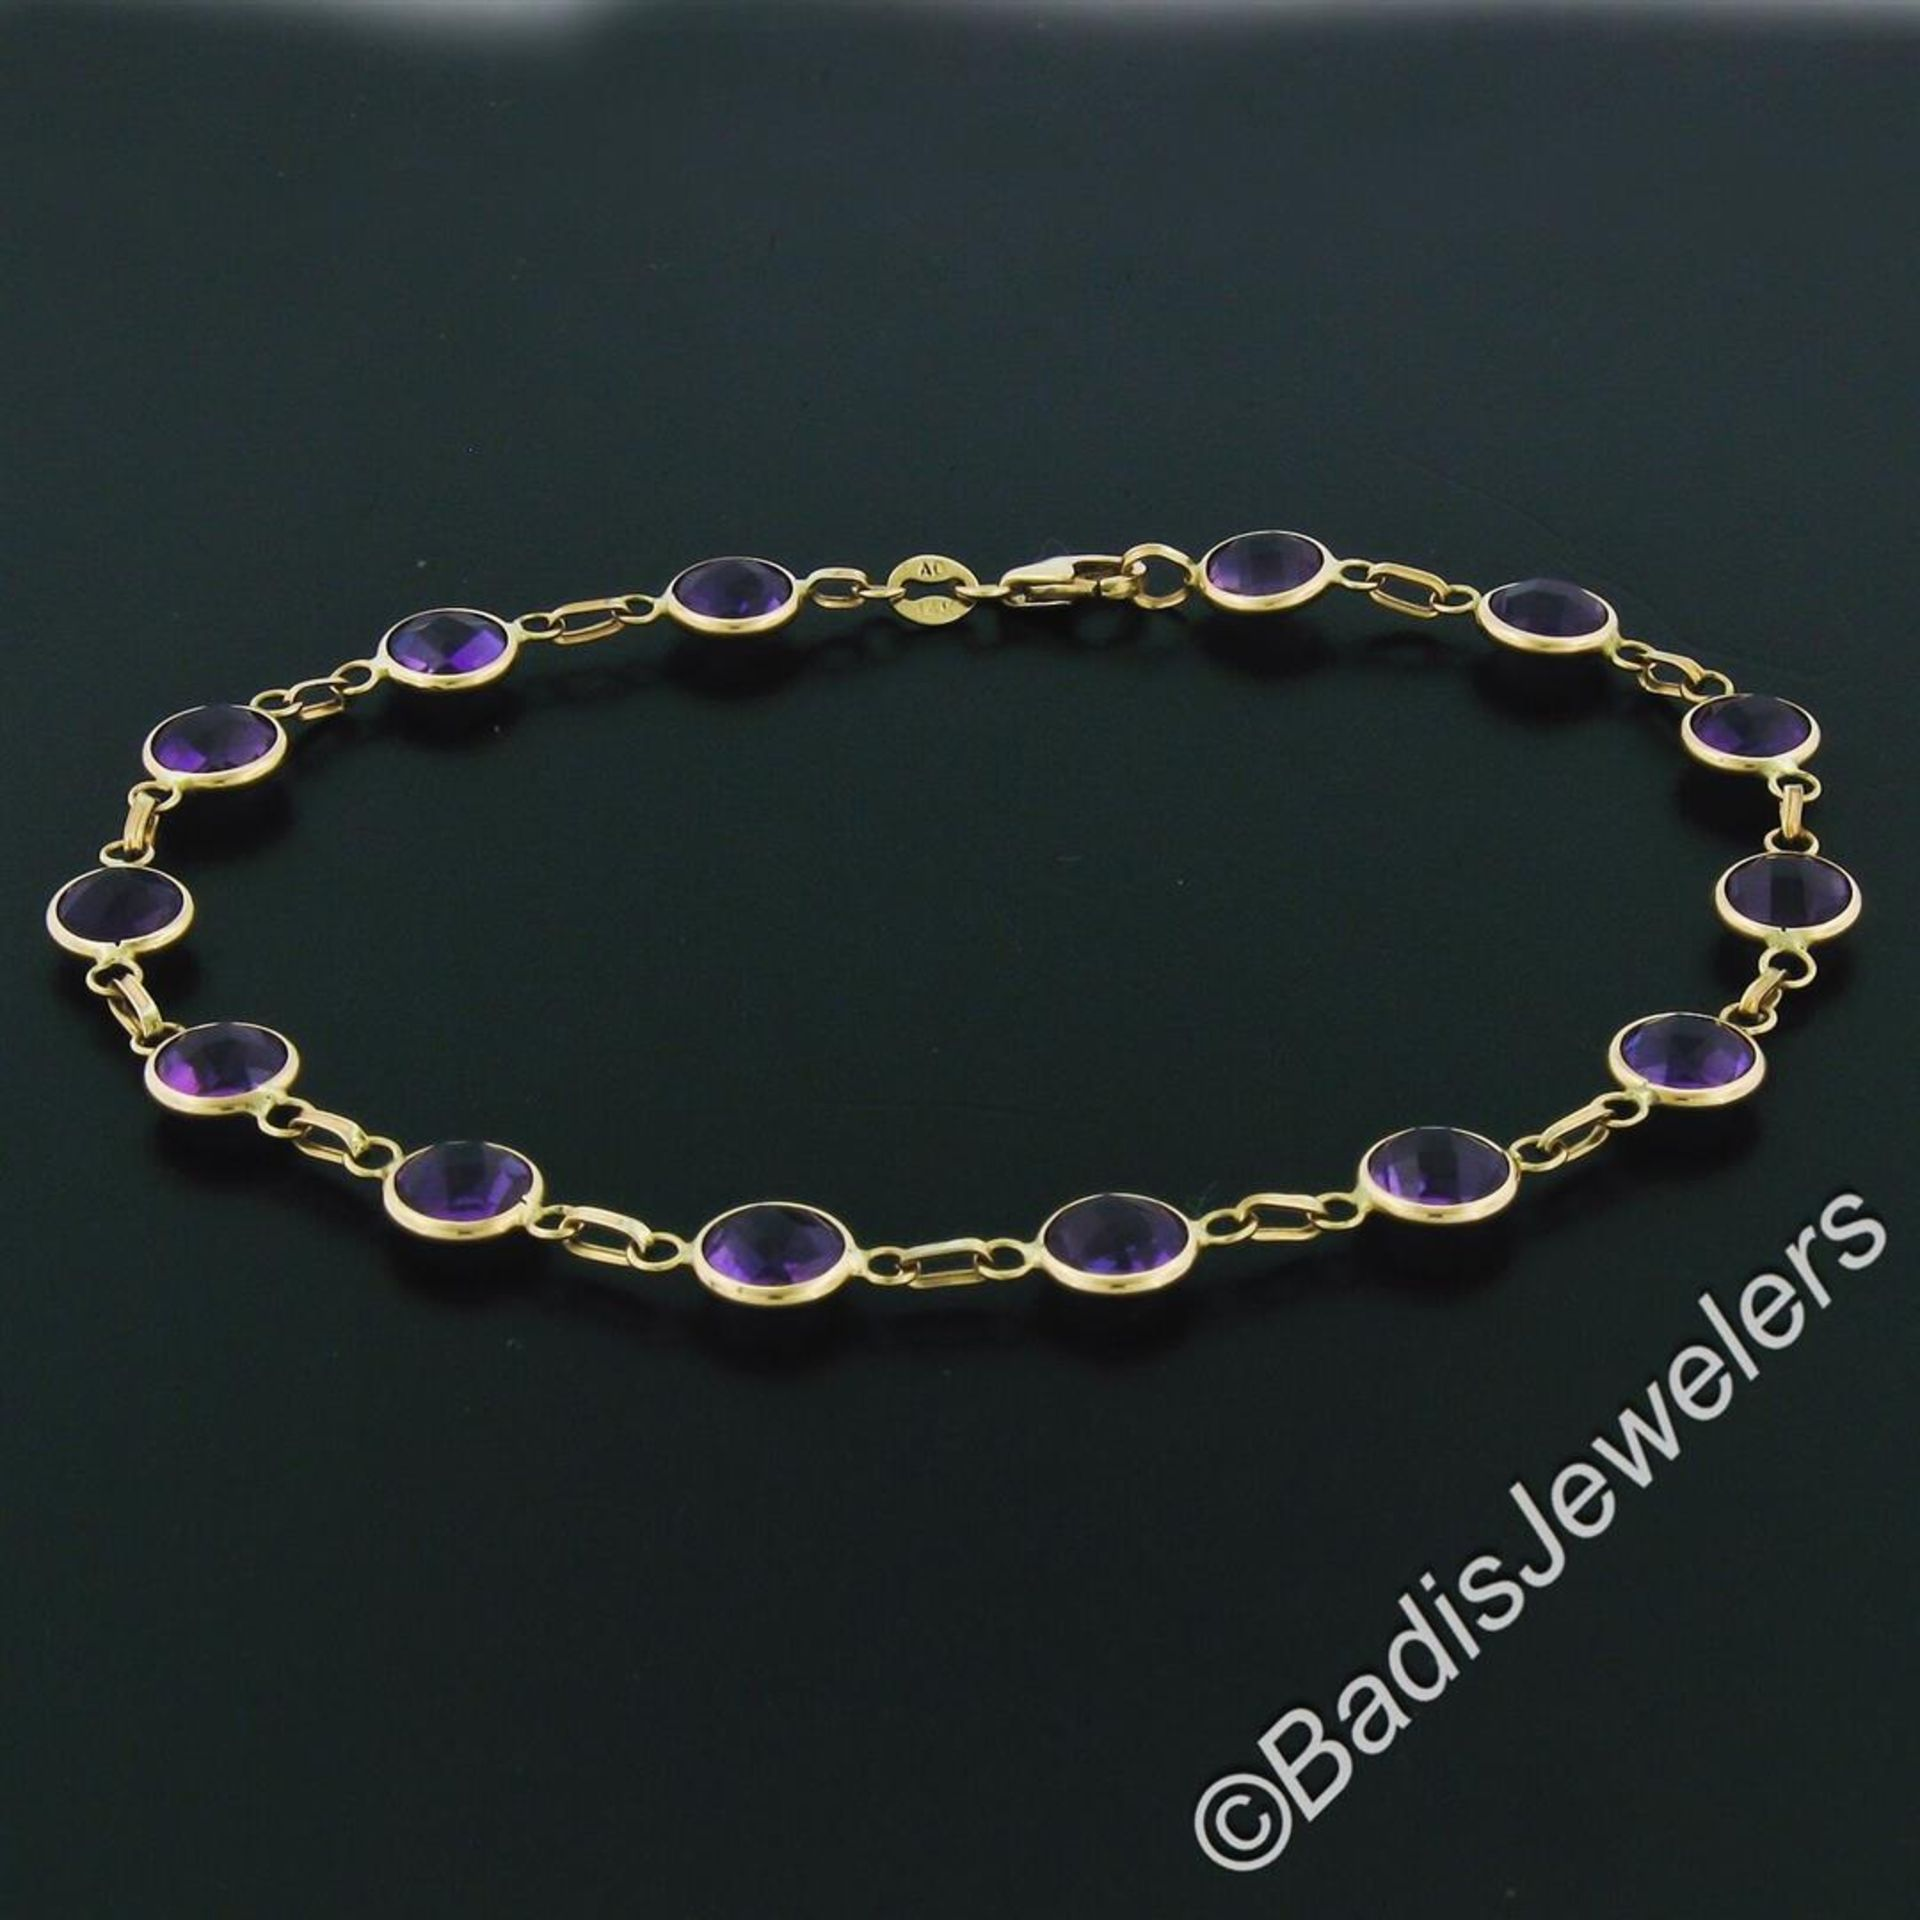 14kt Yellow Gold 10.50ctw Round Checkerboard Amethyst by the Yard Chain Bracelet - Image 3 of 5